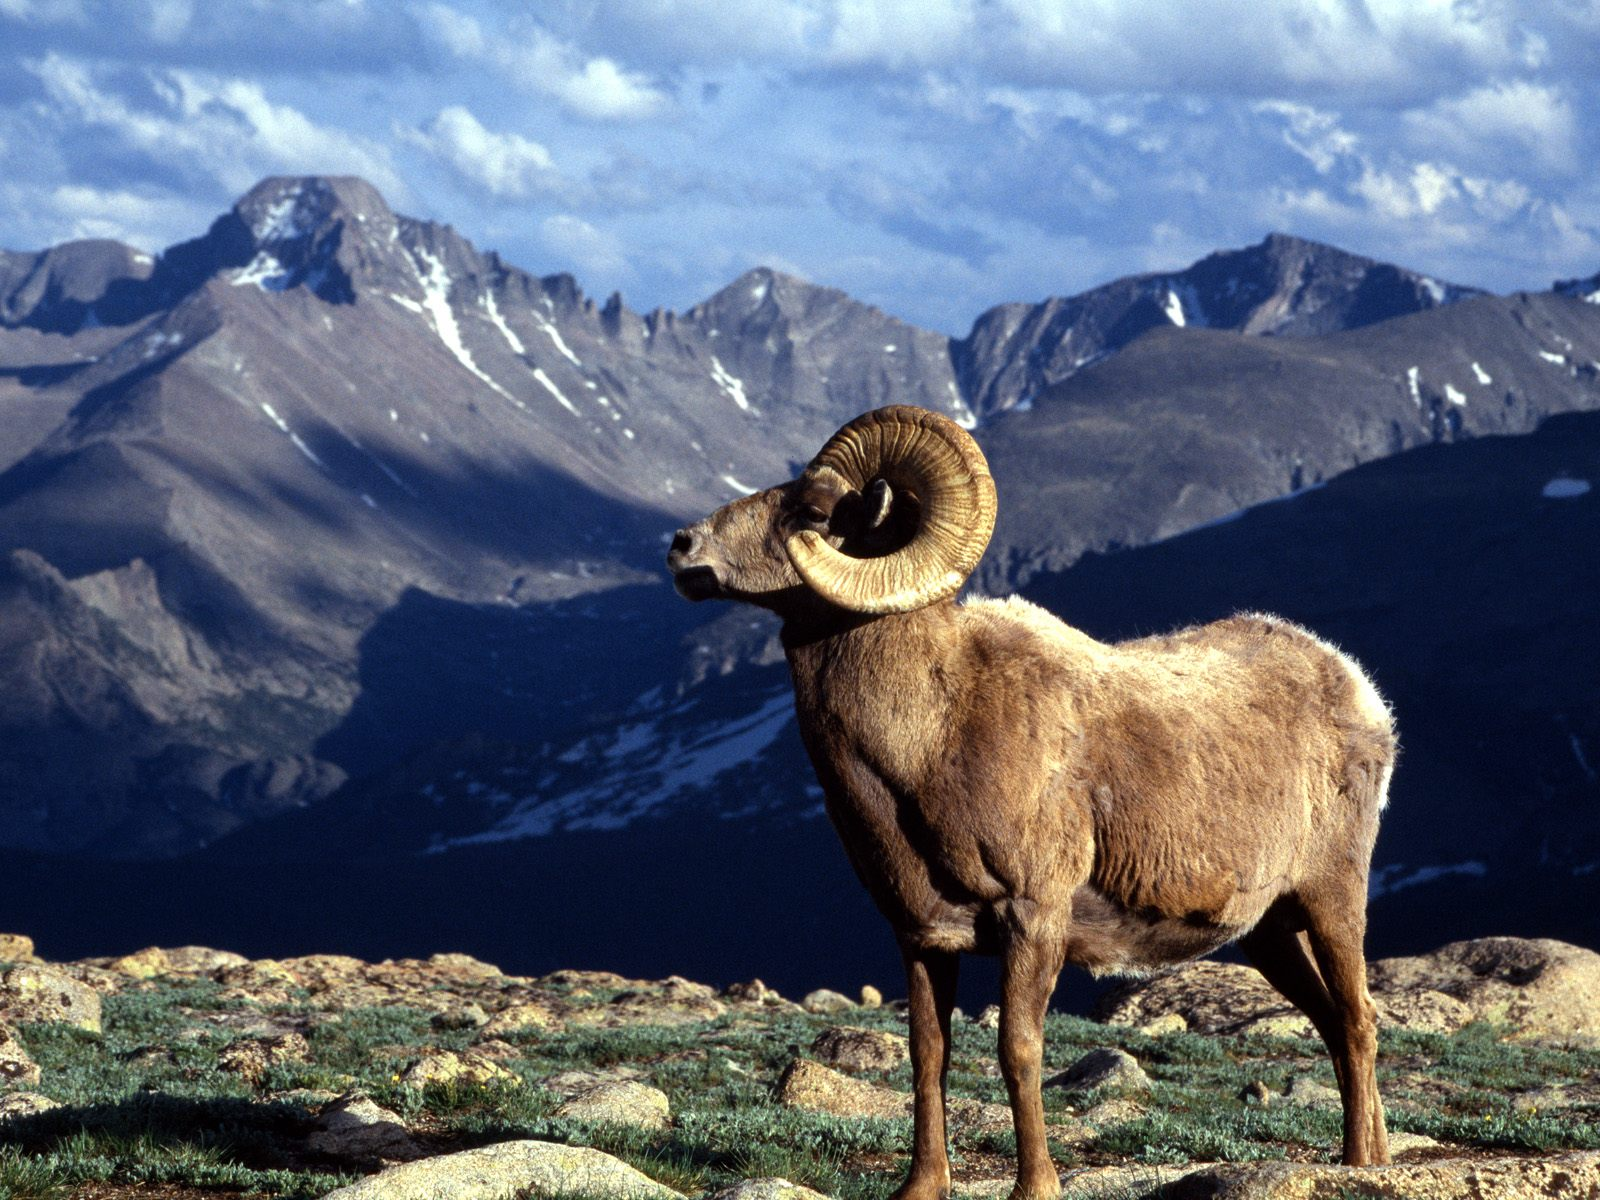 Ram Rocky Mountain National Park Colorado picture Big Horn Ram Rocky 1600x1200